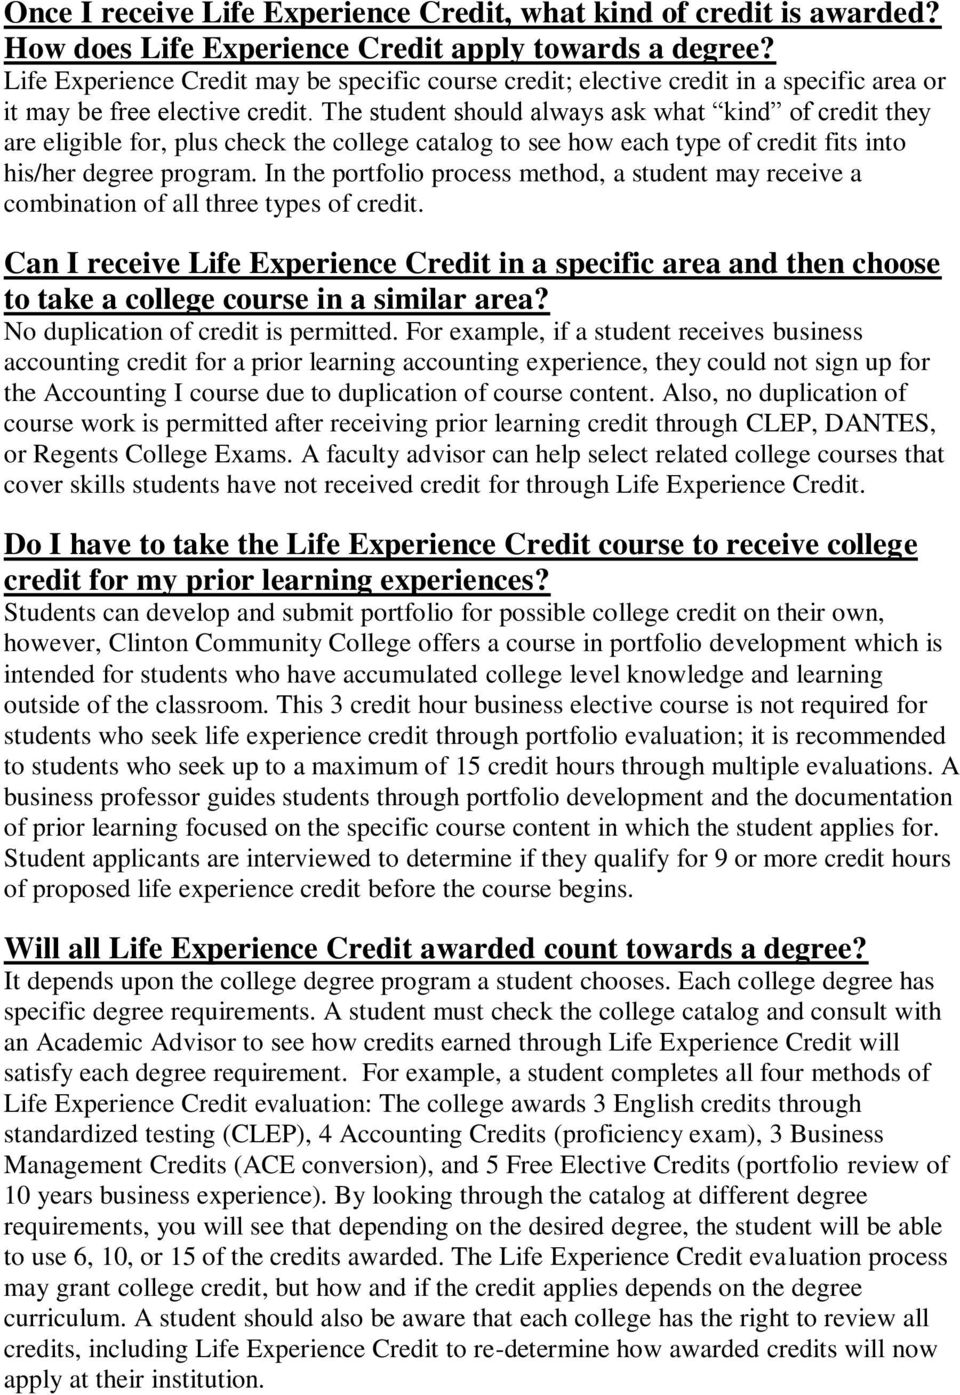 The student should always ask what kind of credit they are eligible for, plus check the college catalog to see how each type of credit fits into his/her degree program.